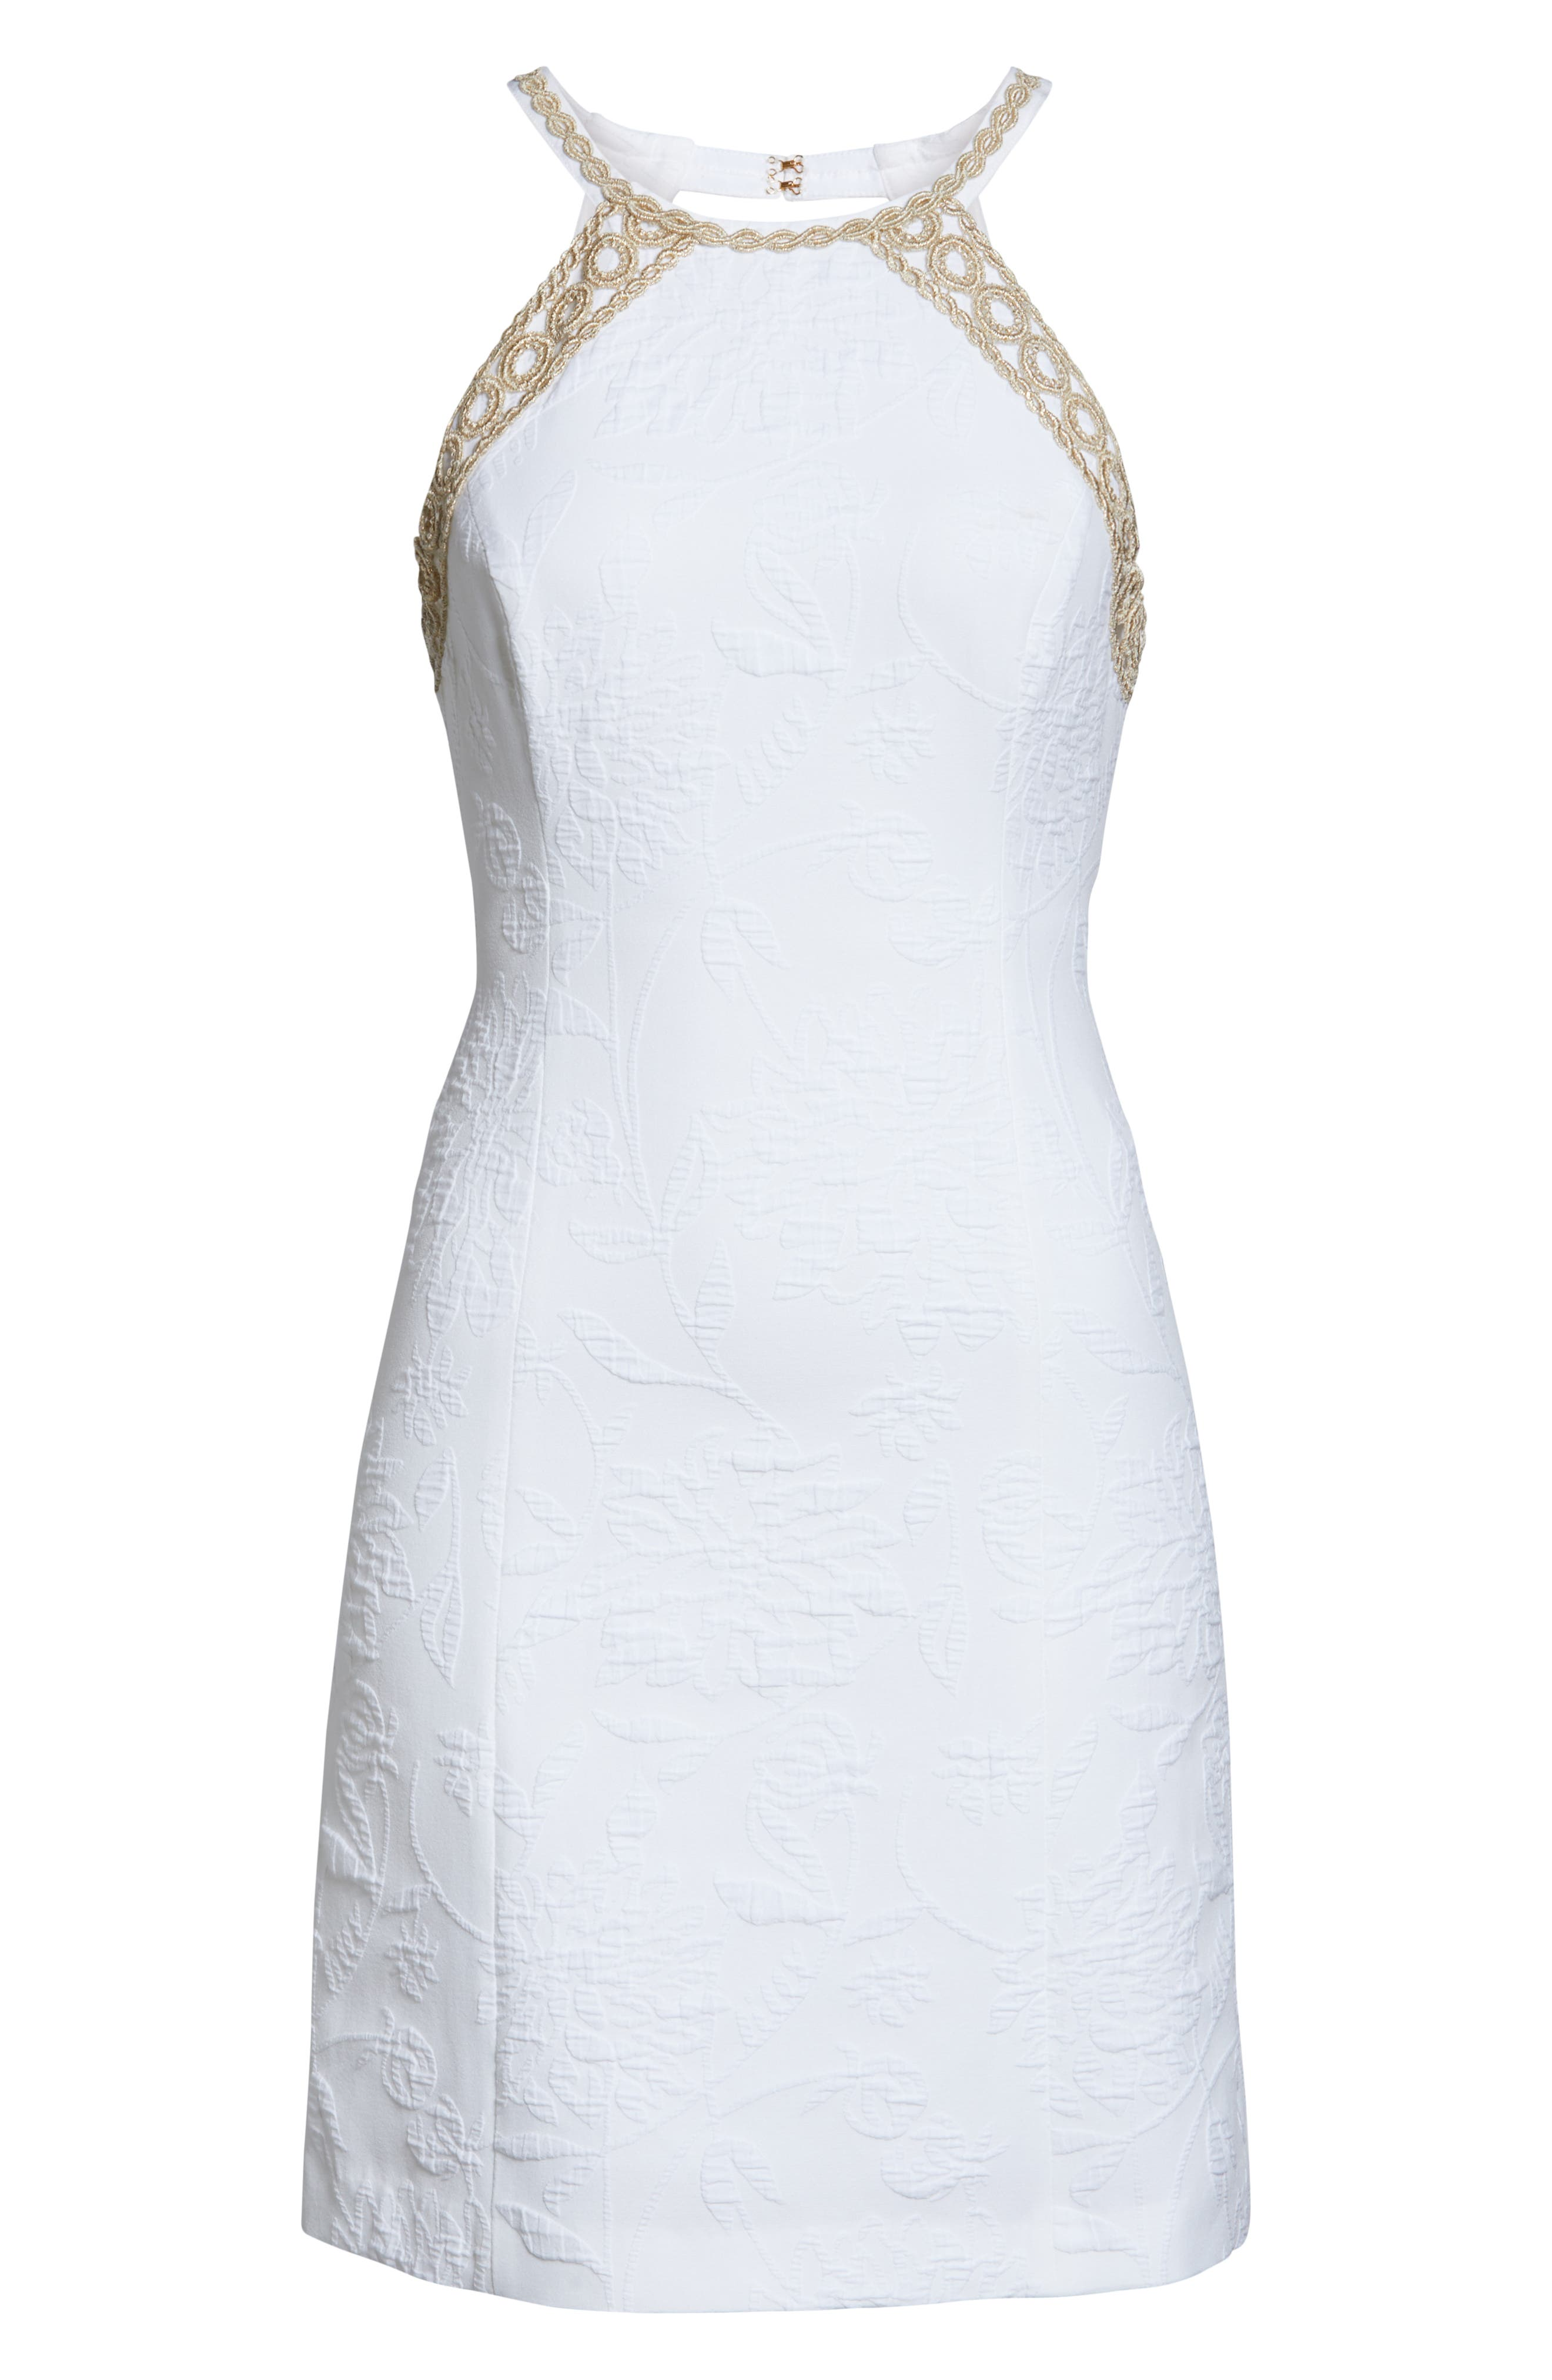 Pearl Stretch Shift Dress,                             Alternate thumbnail 6, color,                             RESORT WHITE CALIENTE PU